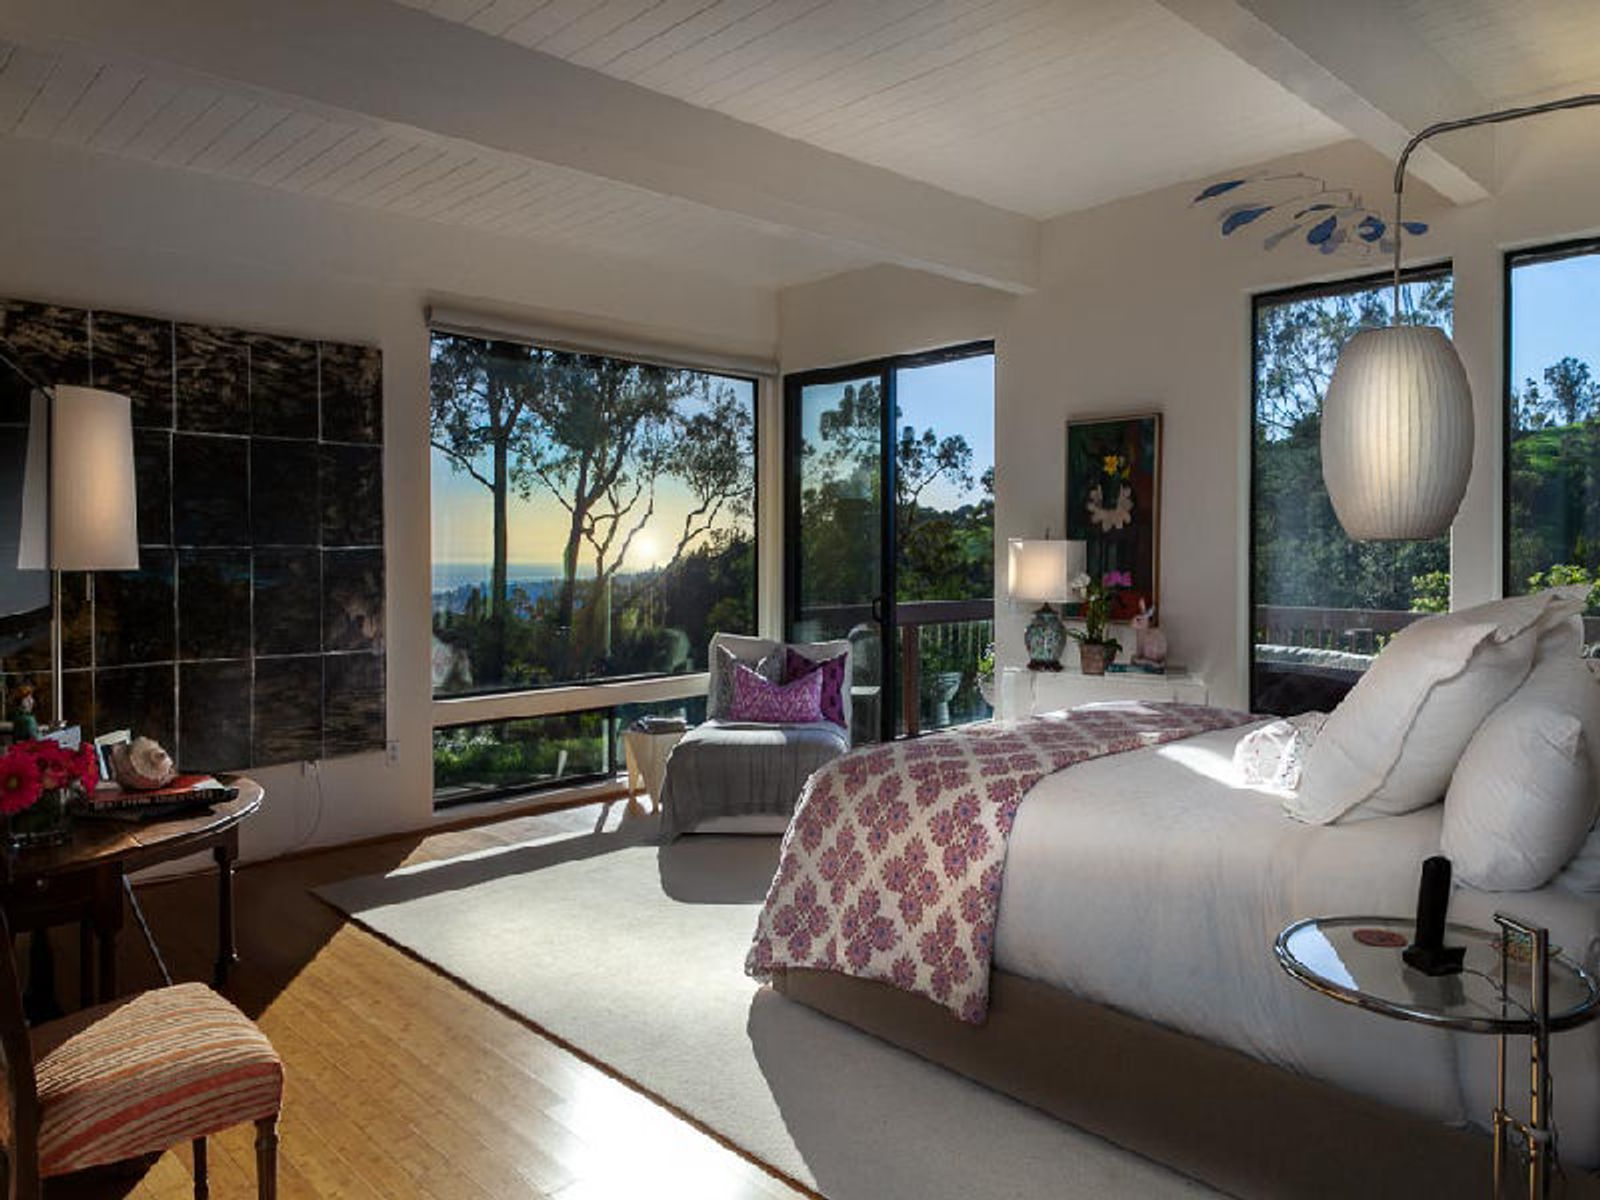 Master Bedroom with View of the Ocean